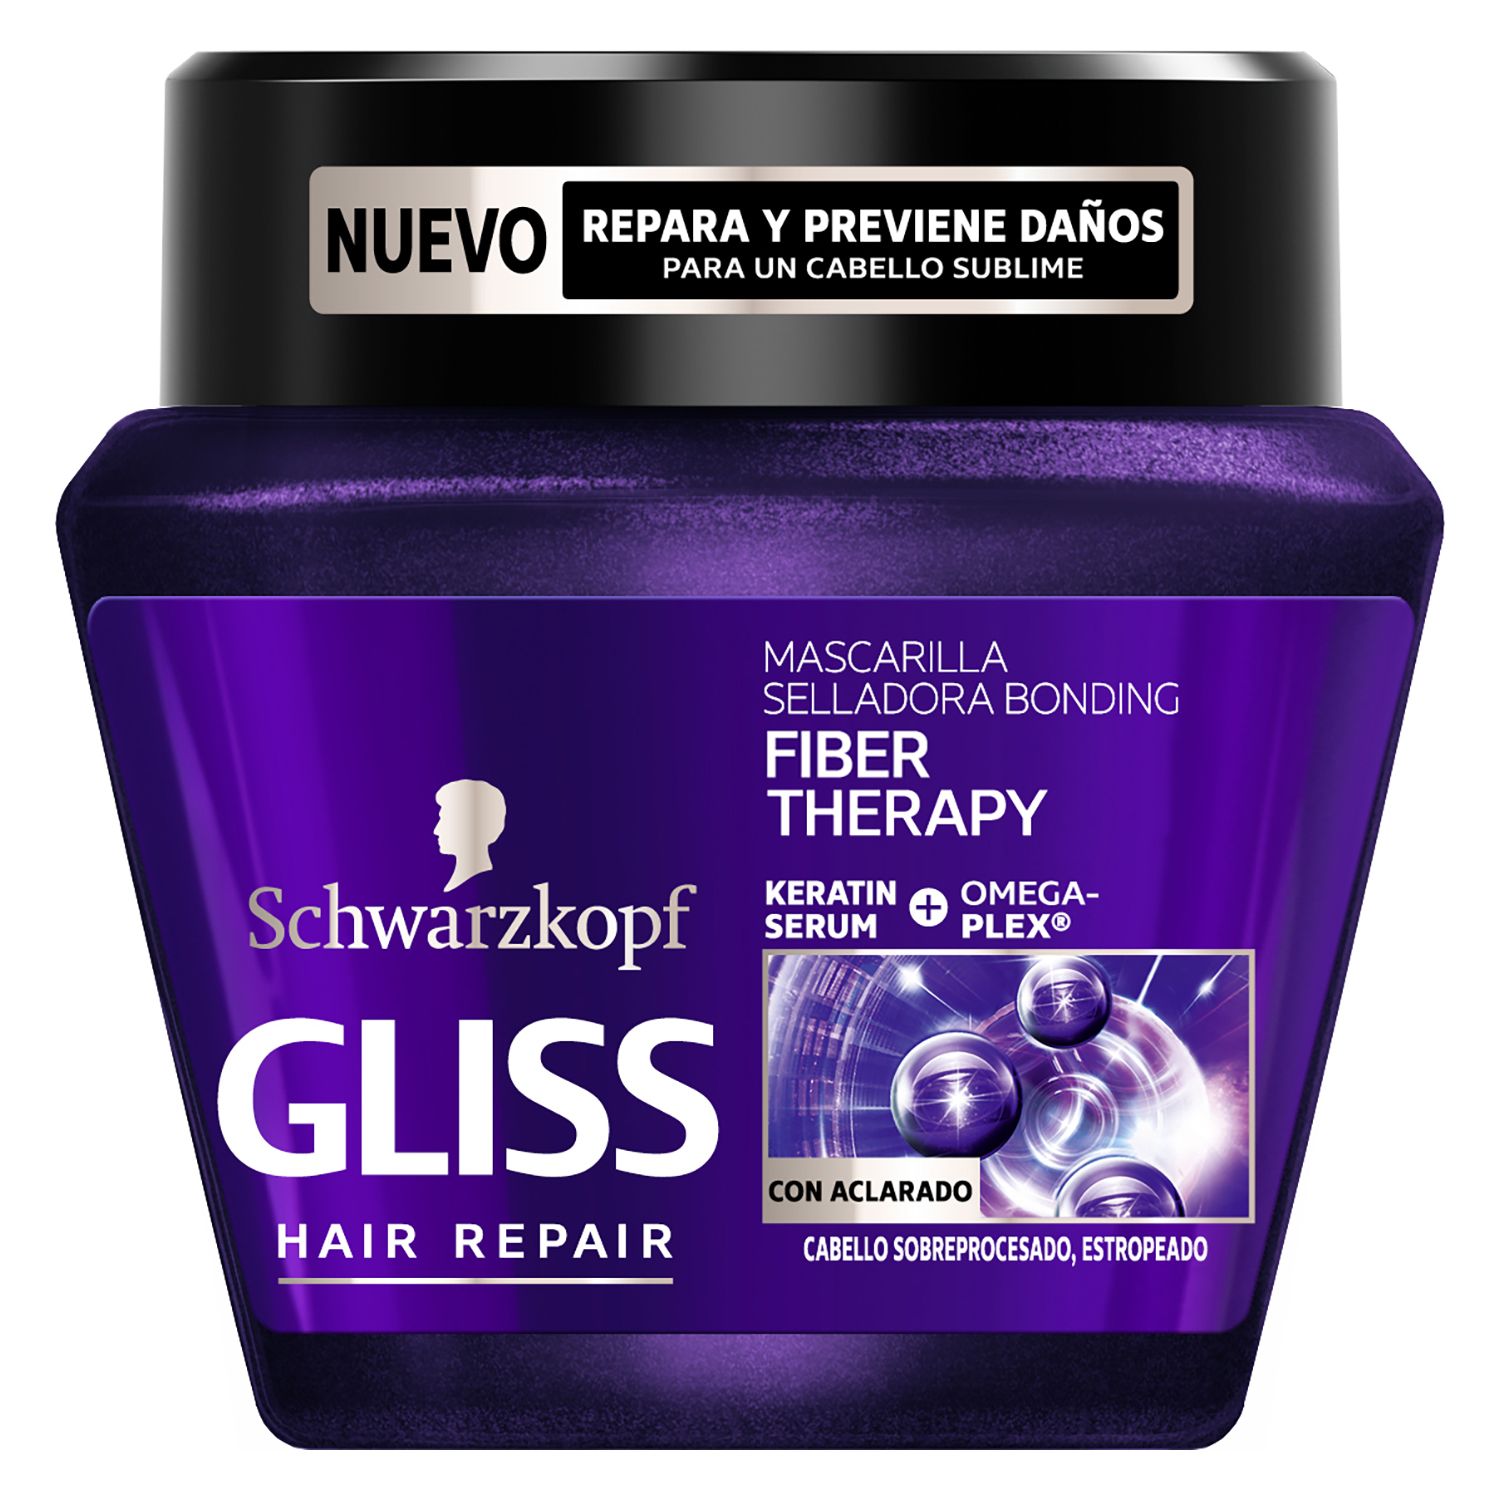 Mascarilla Fiber Therapy Bonding para cabello estropeado Gliss 300 ml.